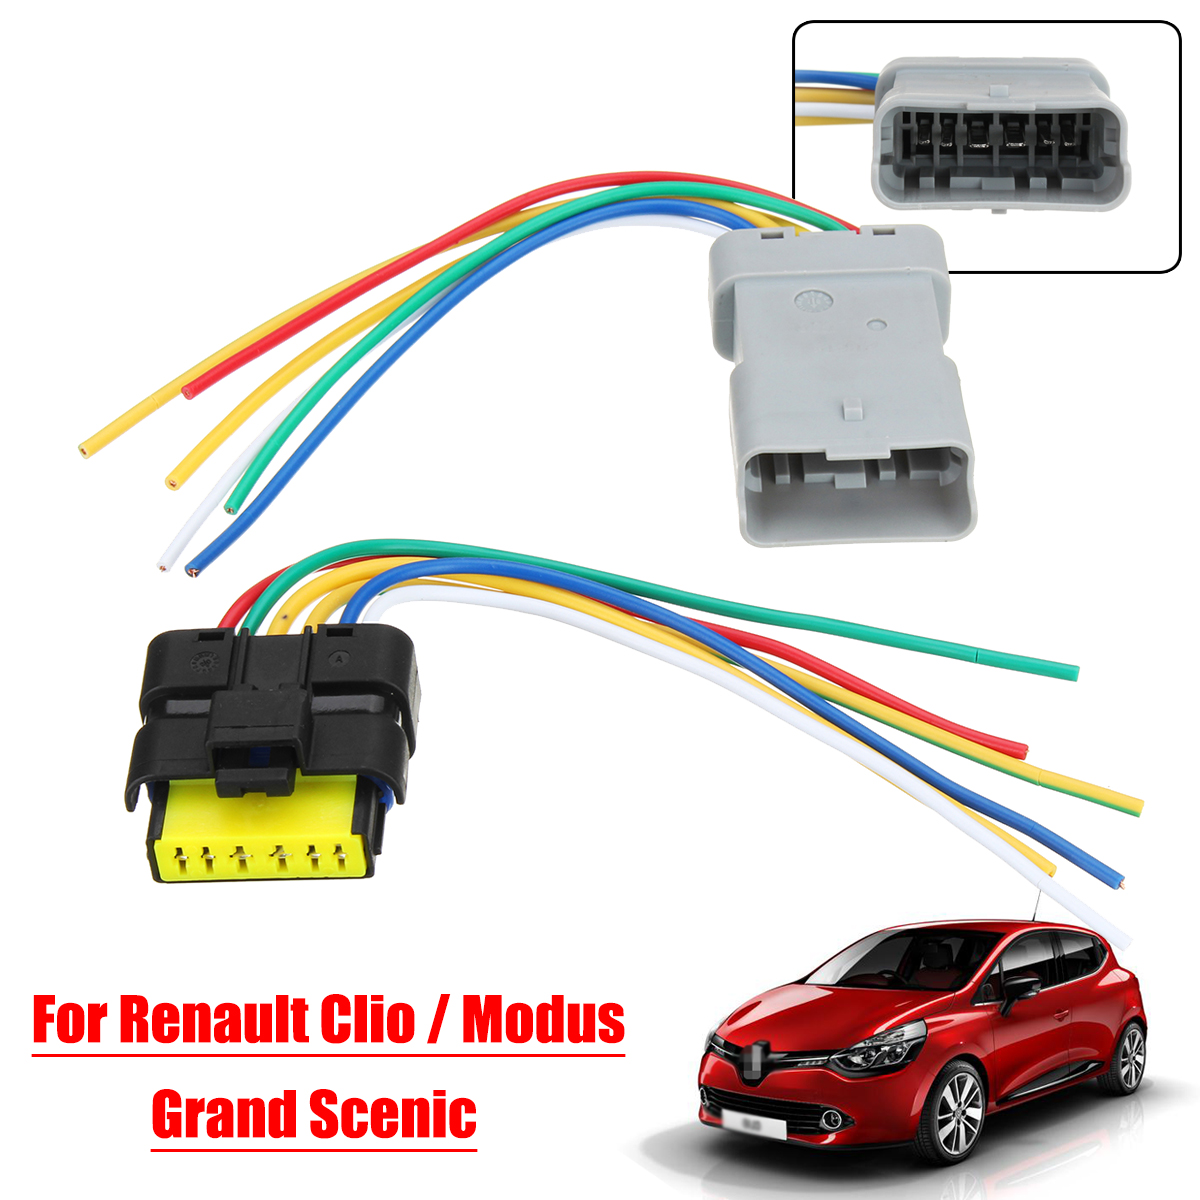 hight resolution of 1set window module wiring ponytail harness plastic plug for renault clio grand scenic modus